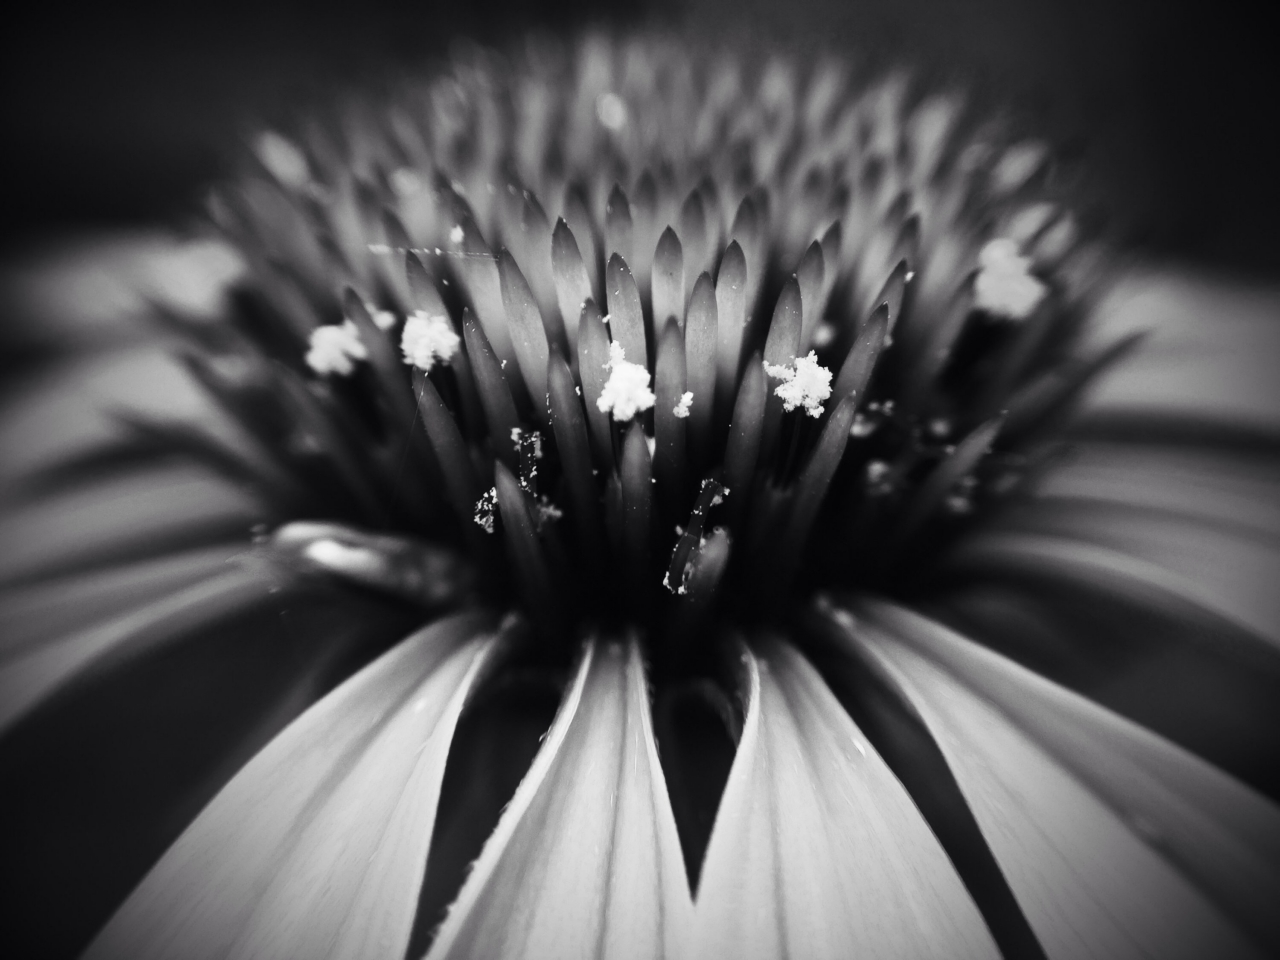 Iphone 6+ ,macro lens ,pro camera ,mattebox . MobiMono 112 ,by IPRuss